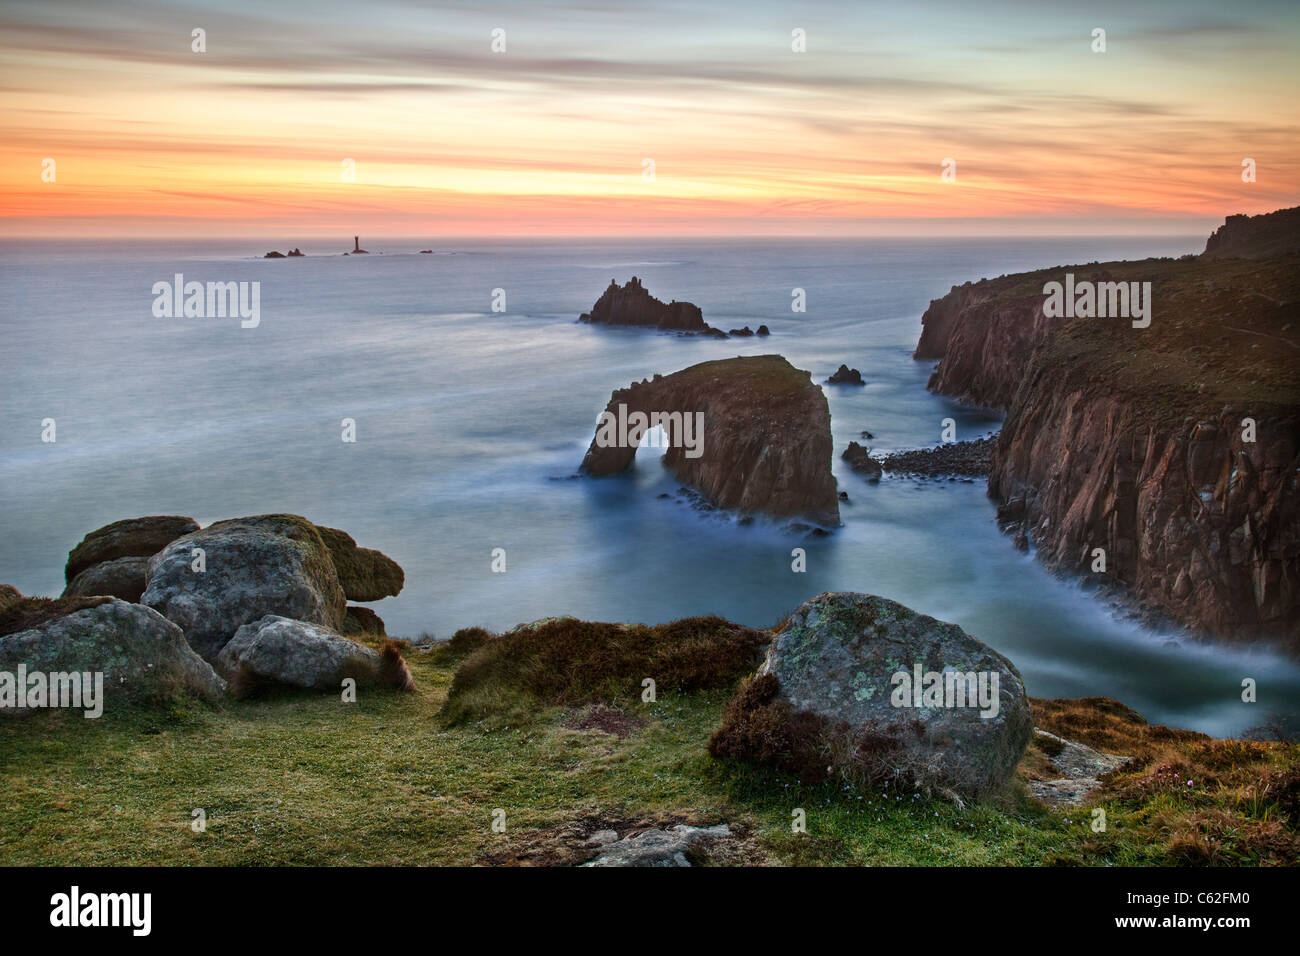 Lands End at Dusk, Cornwall. - Stock Image